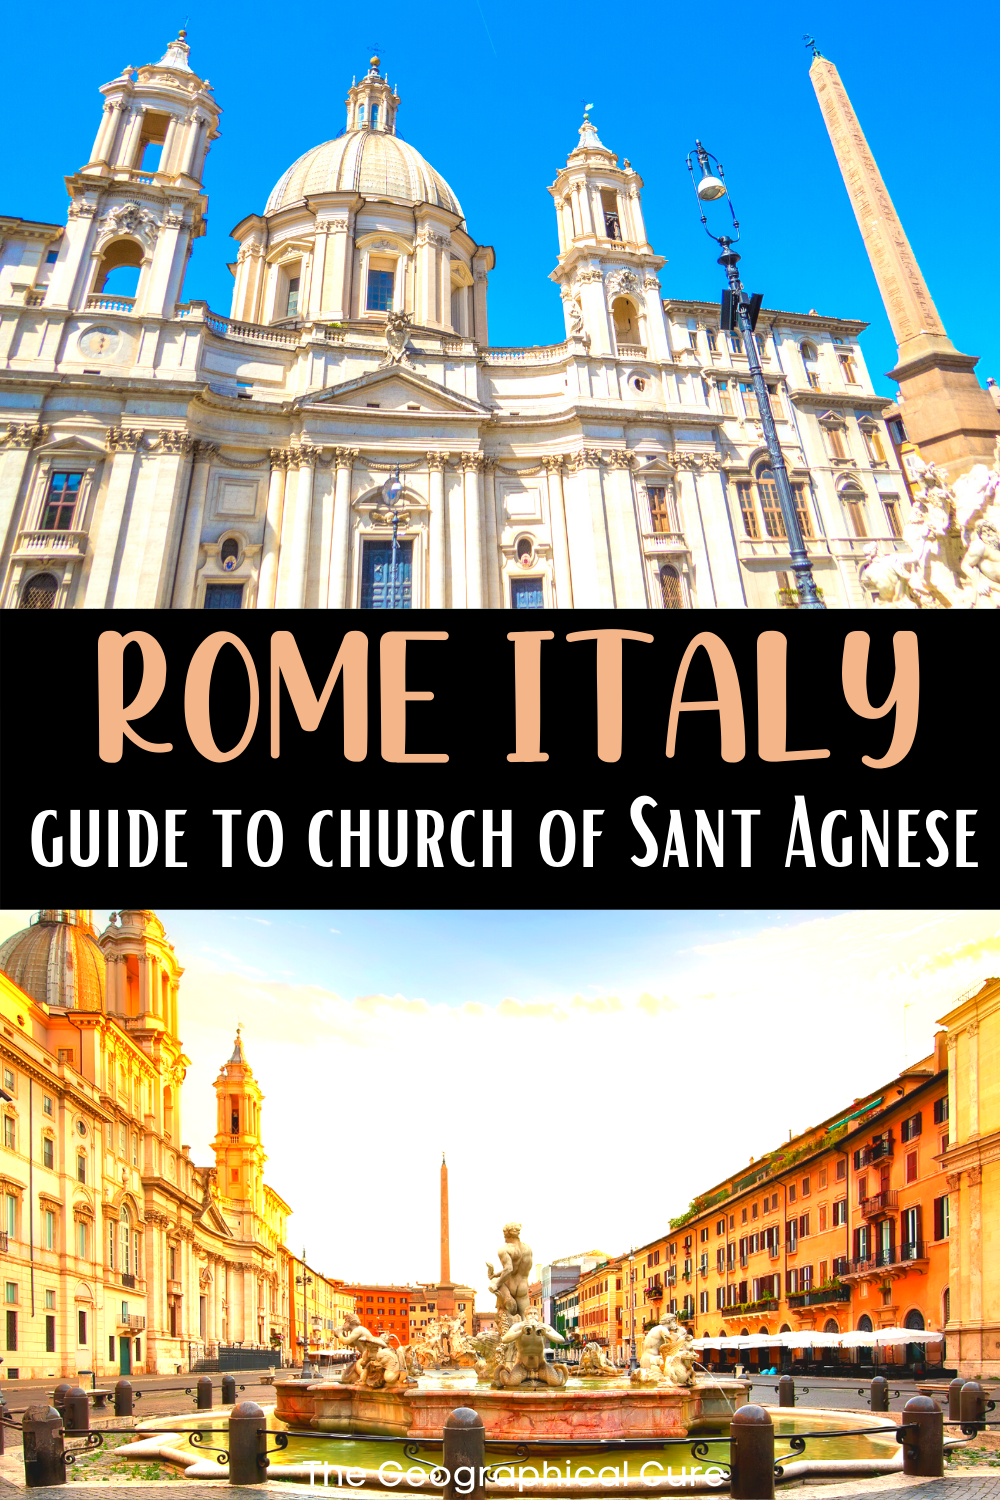 guide to the Church of Sant'Agnese, a Baroque masterpiece in Rome Italy